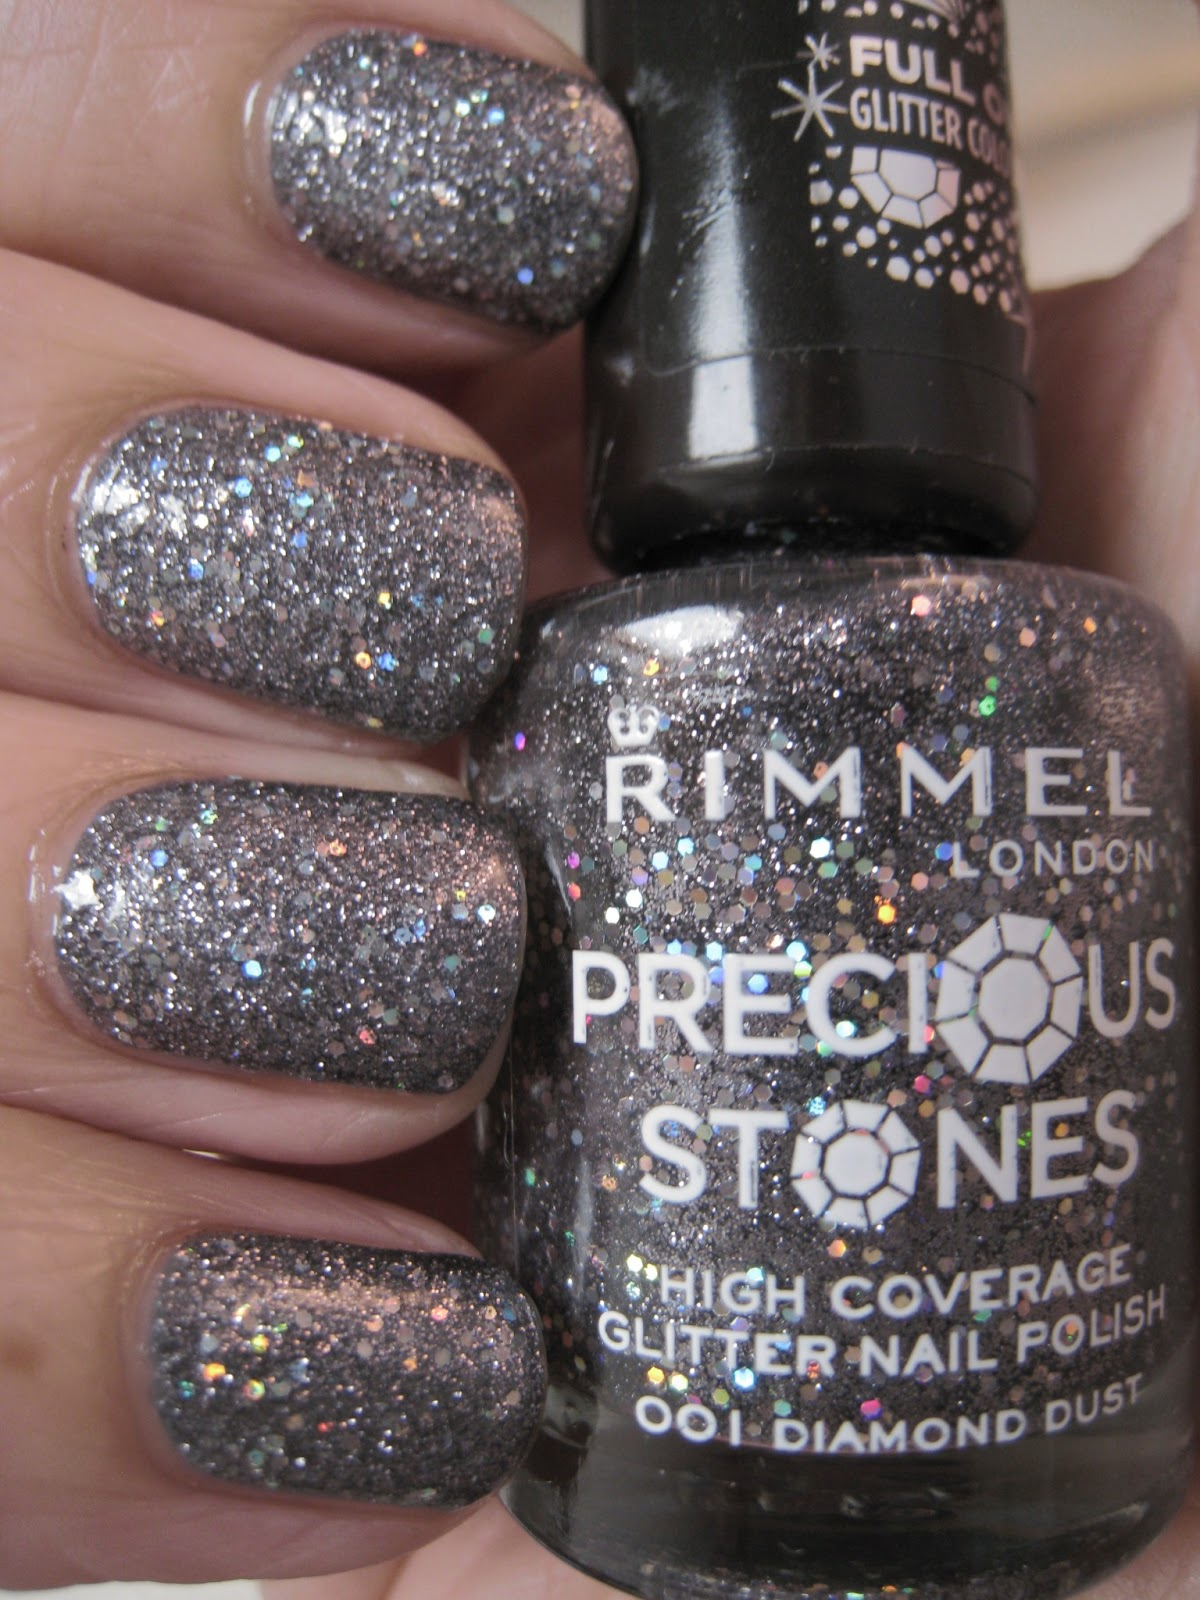 Naily perfect: Rimmel Precious Stone Collection - Diamond Dust Swatch